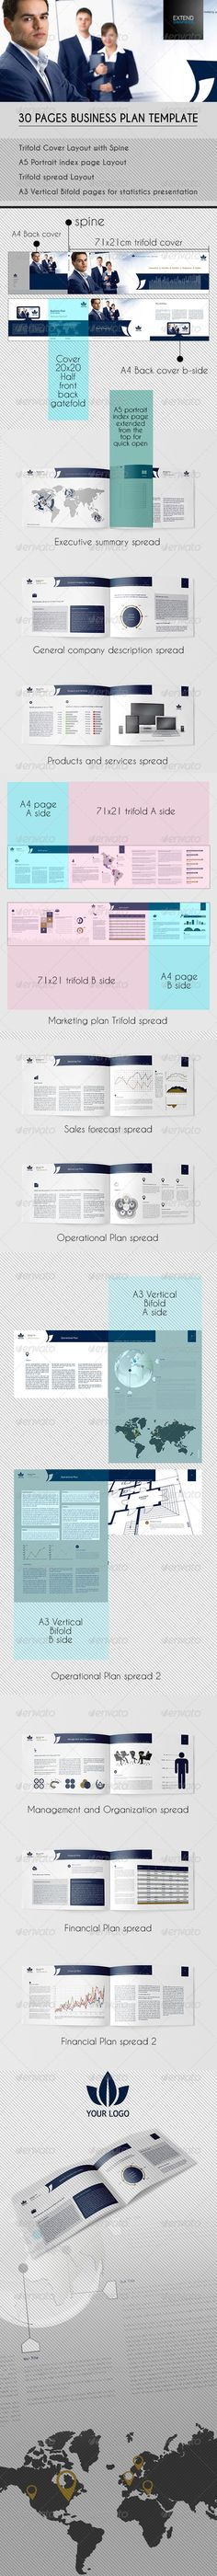 Professional Business Plan Template Business plan template - business profit and loss statement template